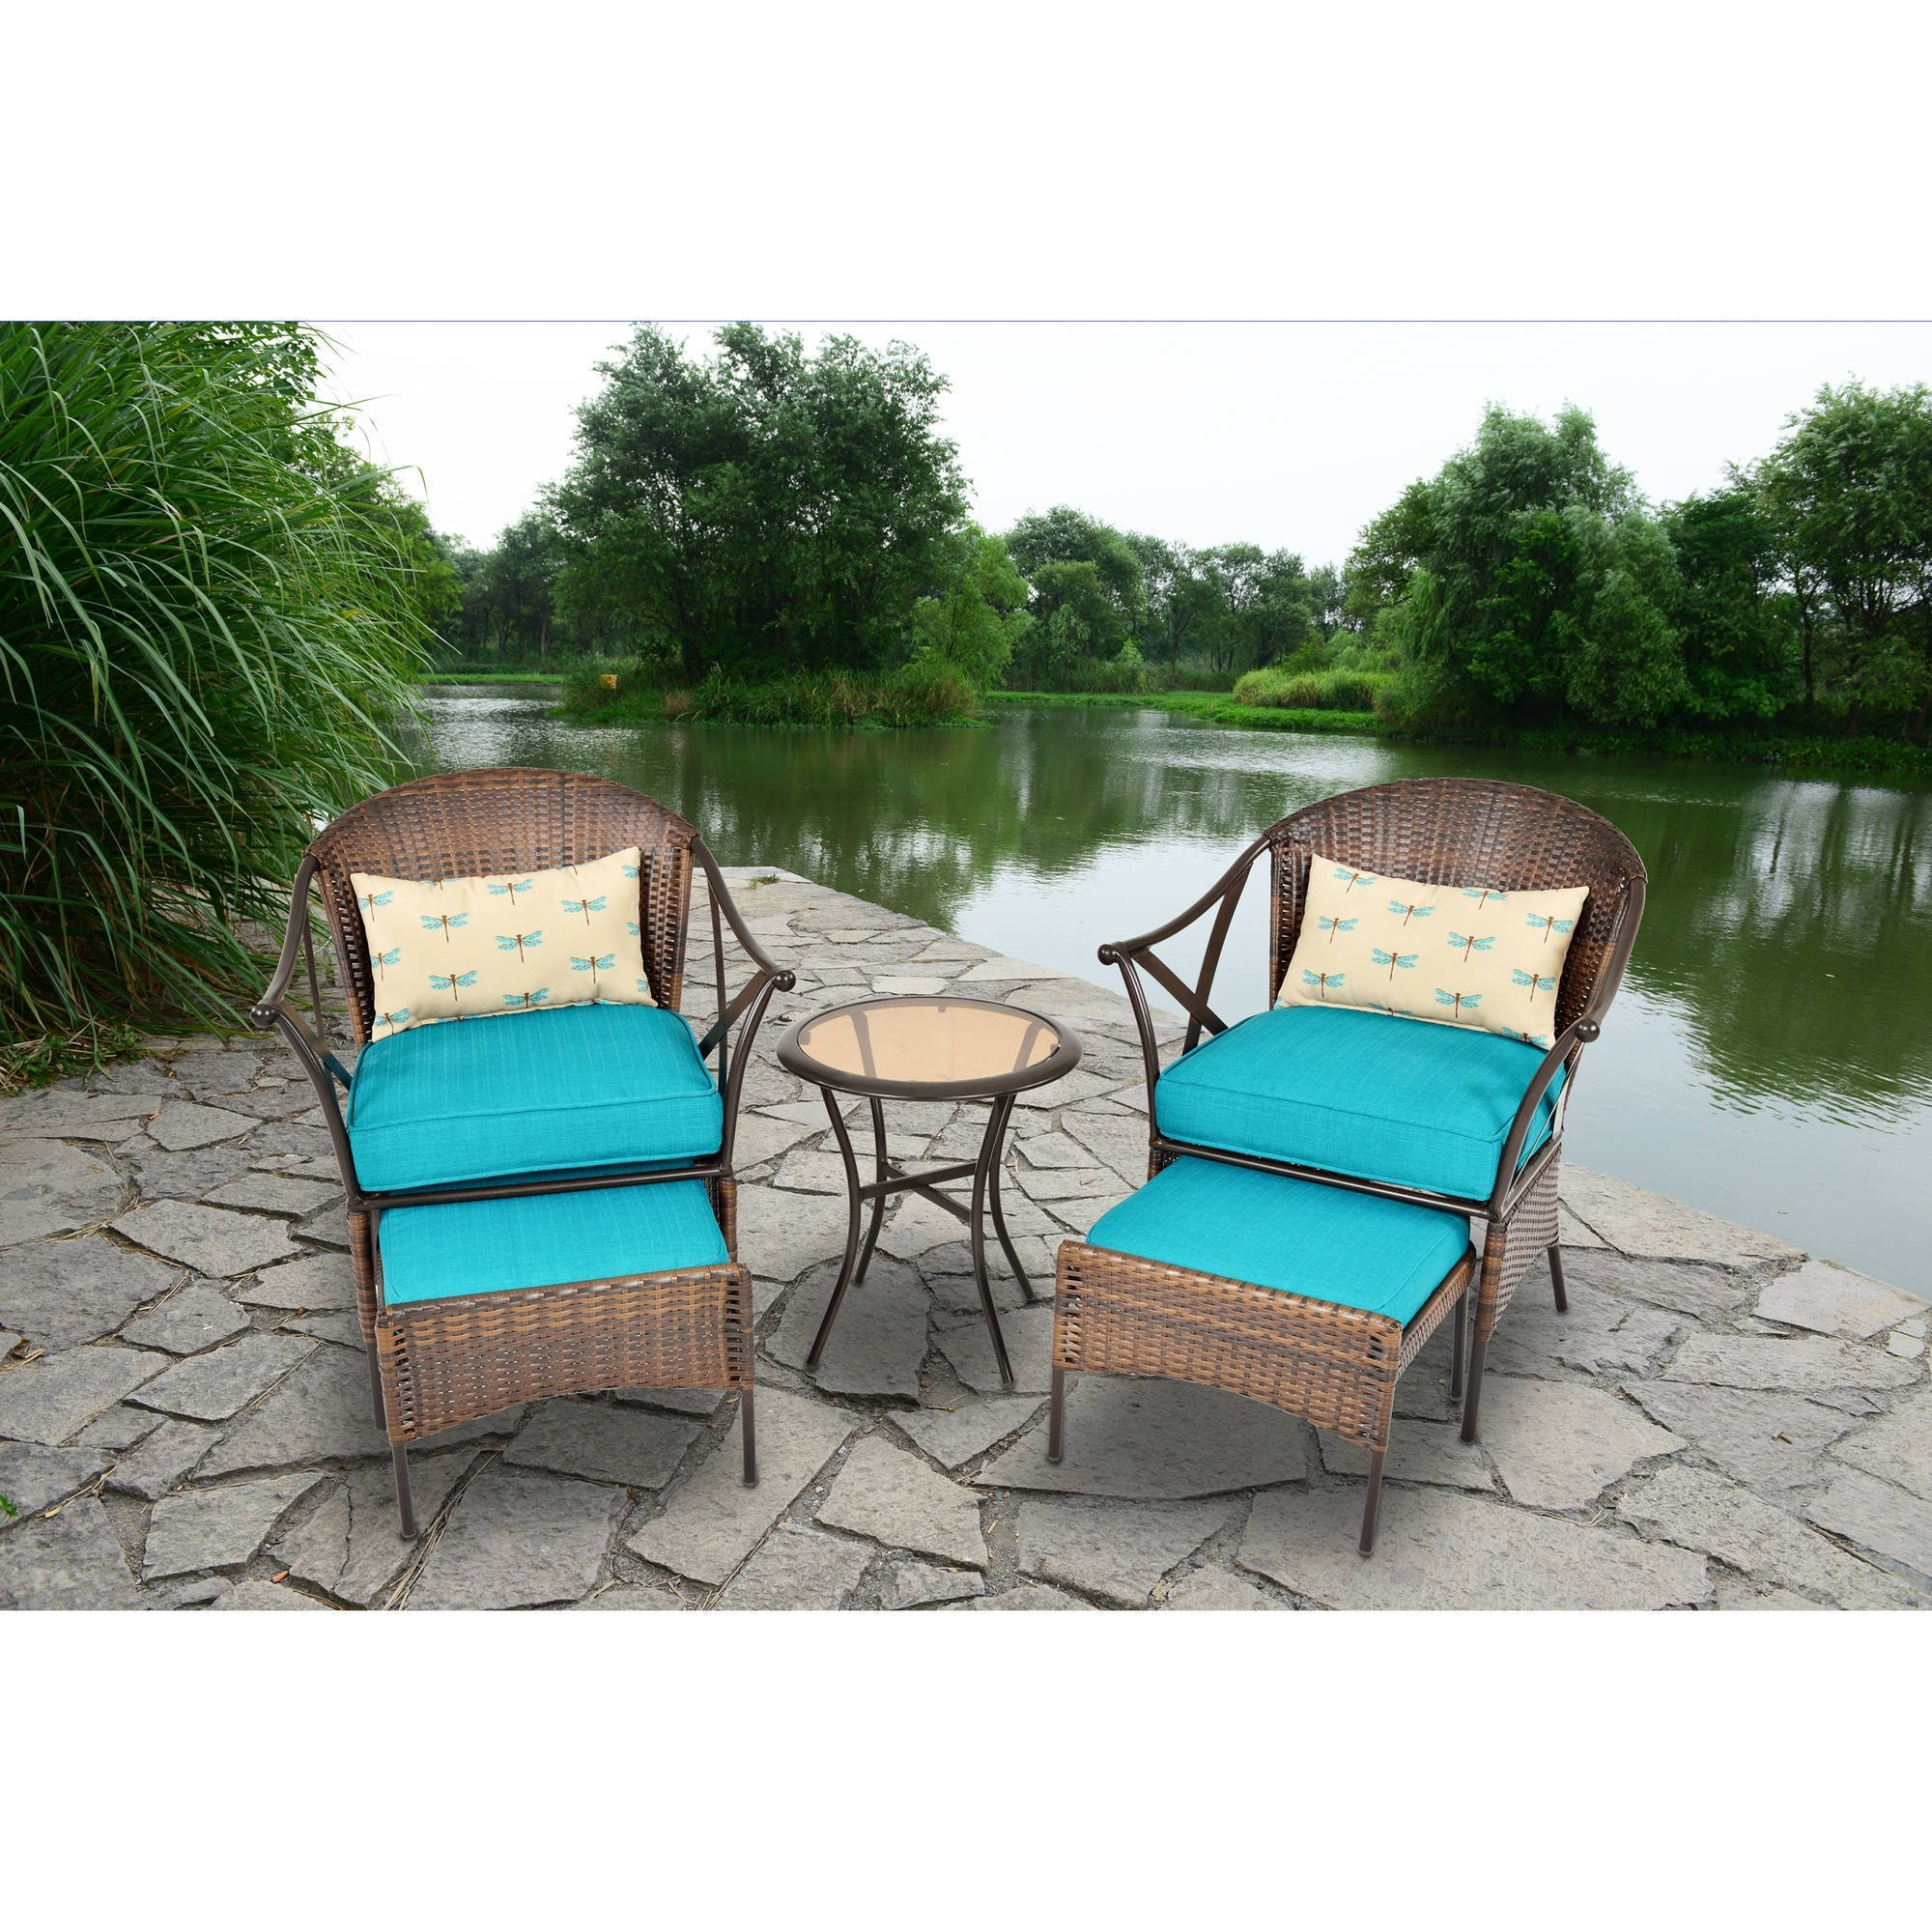 Deal!!! 3 Ps Outdoor Rattan Patio Furniture Set Backyard Garden In Trendy Patio Conversation Sets At Walmart (View 15 of 20)